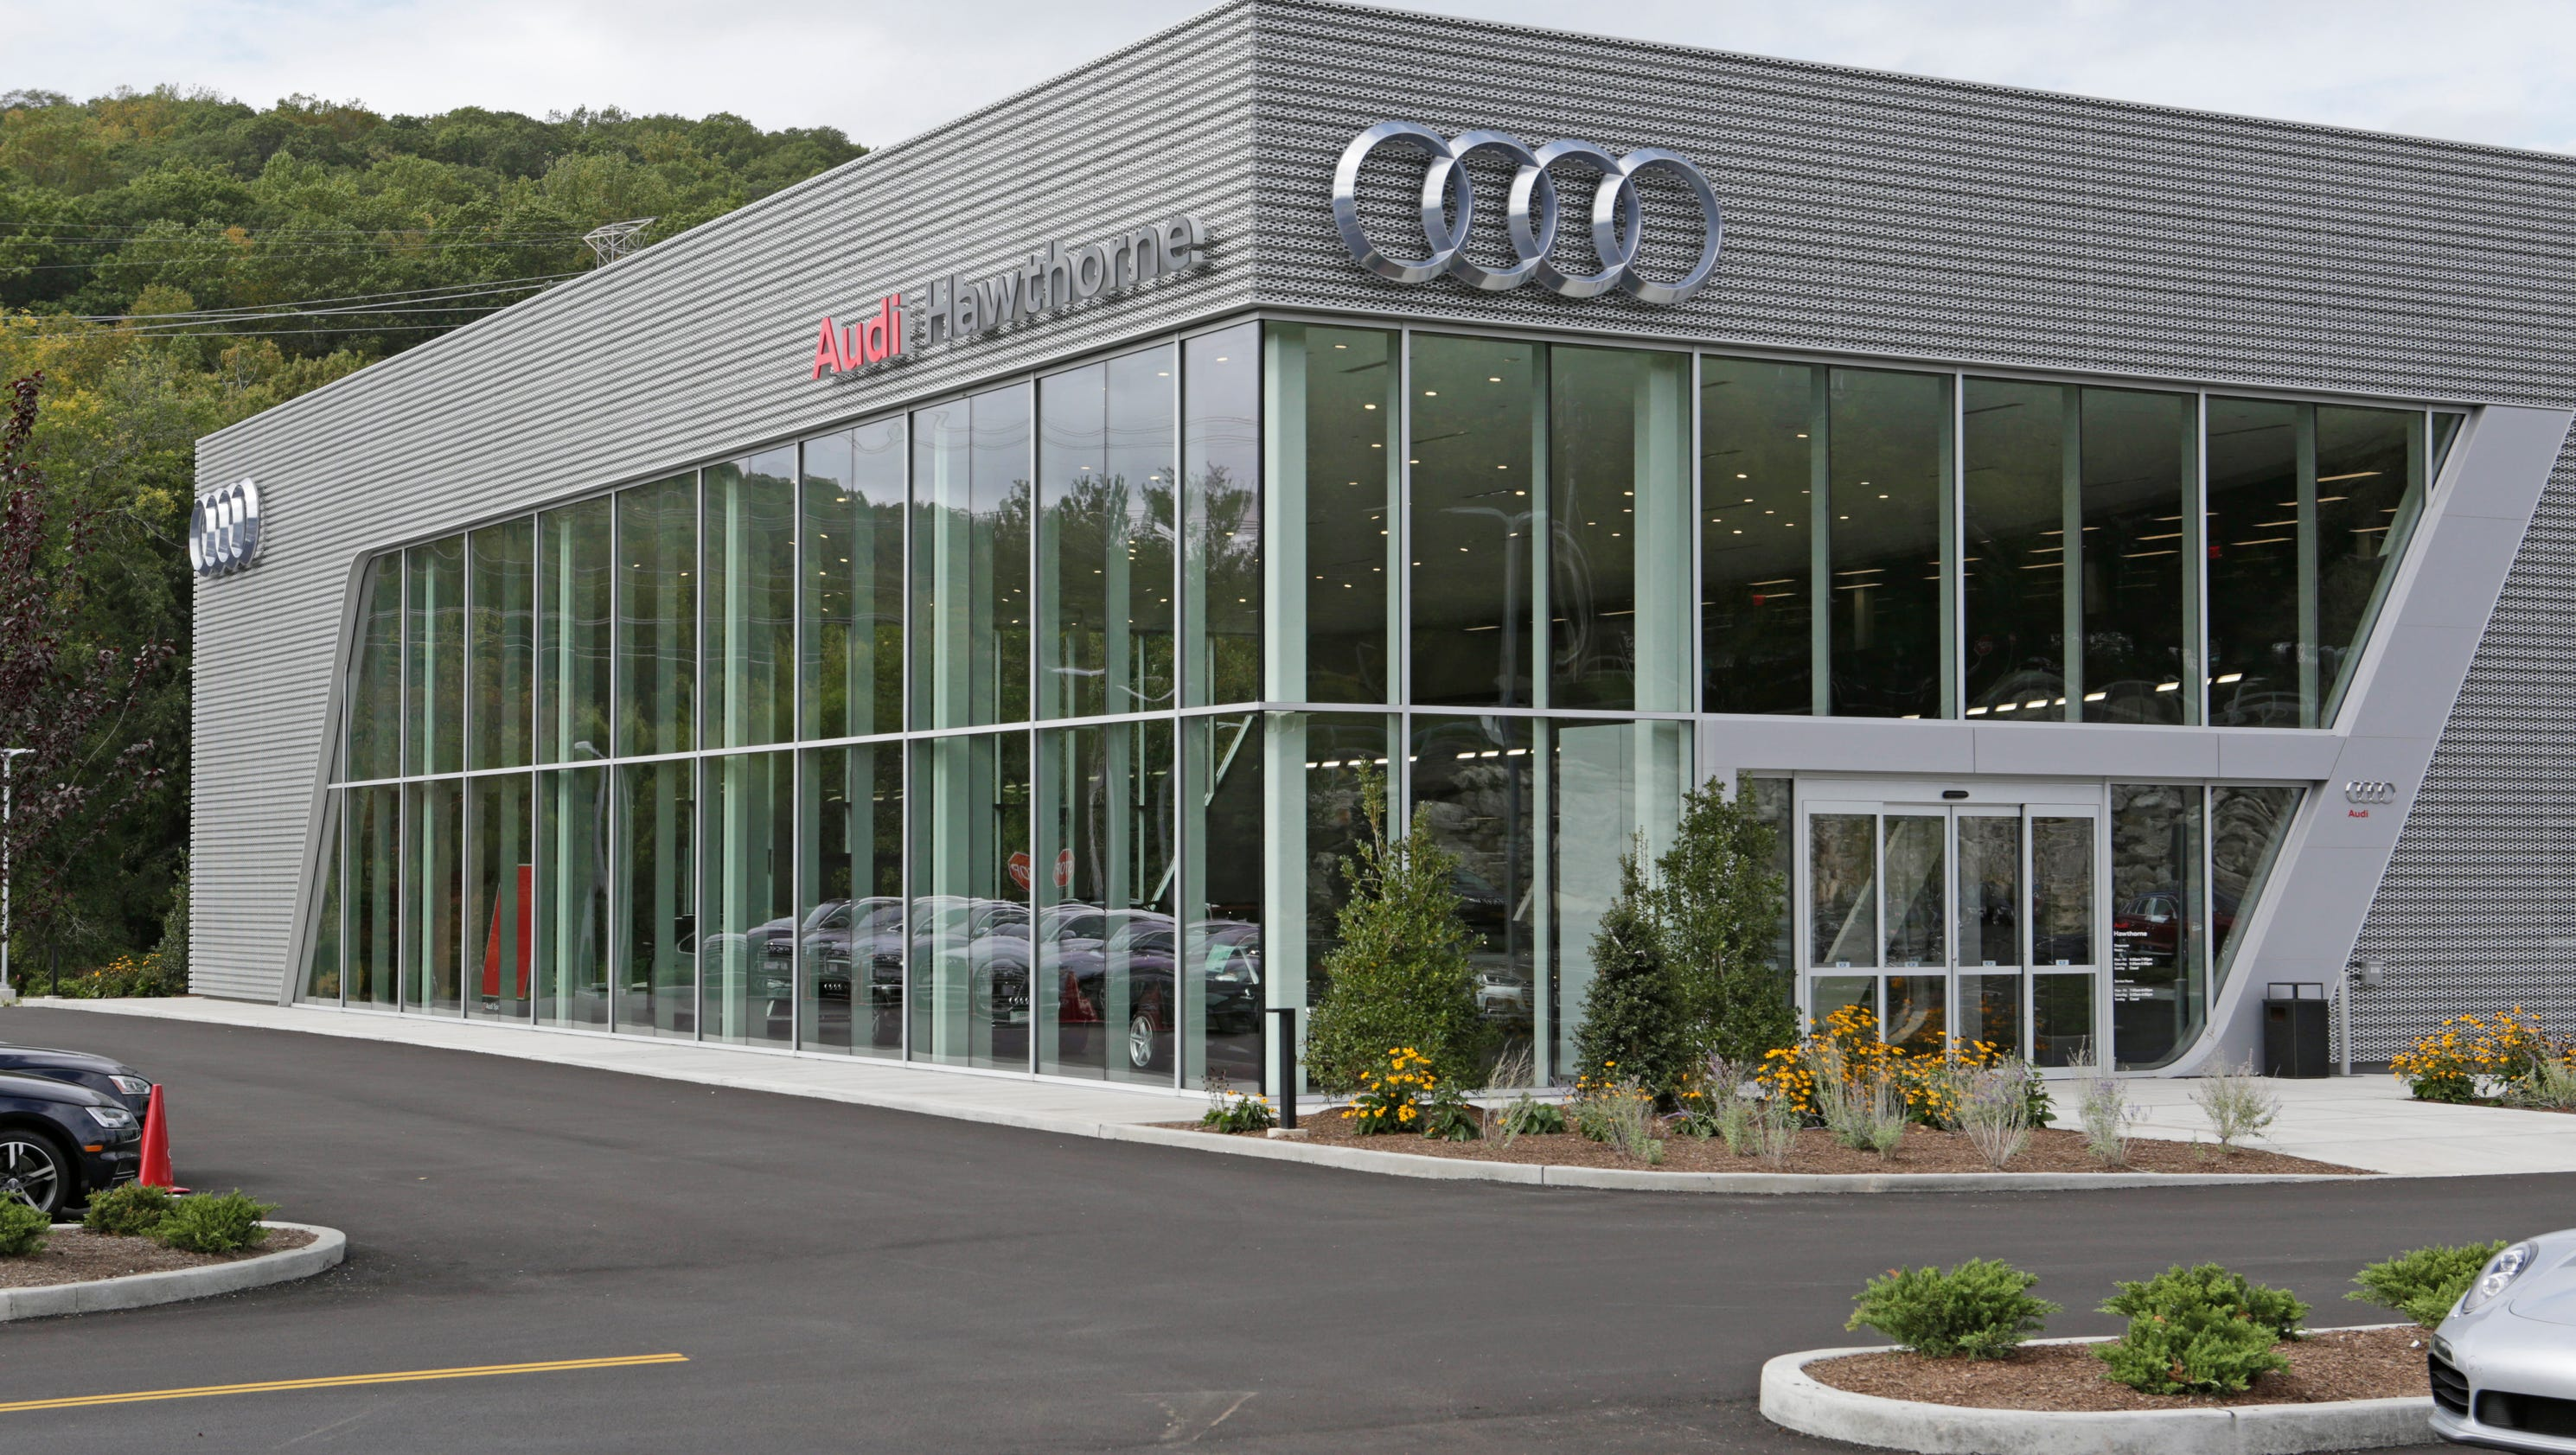 aside extensions audiworld from photo thread page world is gauge interior mki official discussion boost forums the audi paddle stock westchester